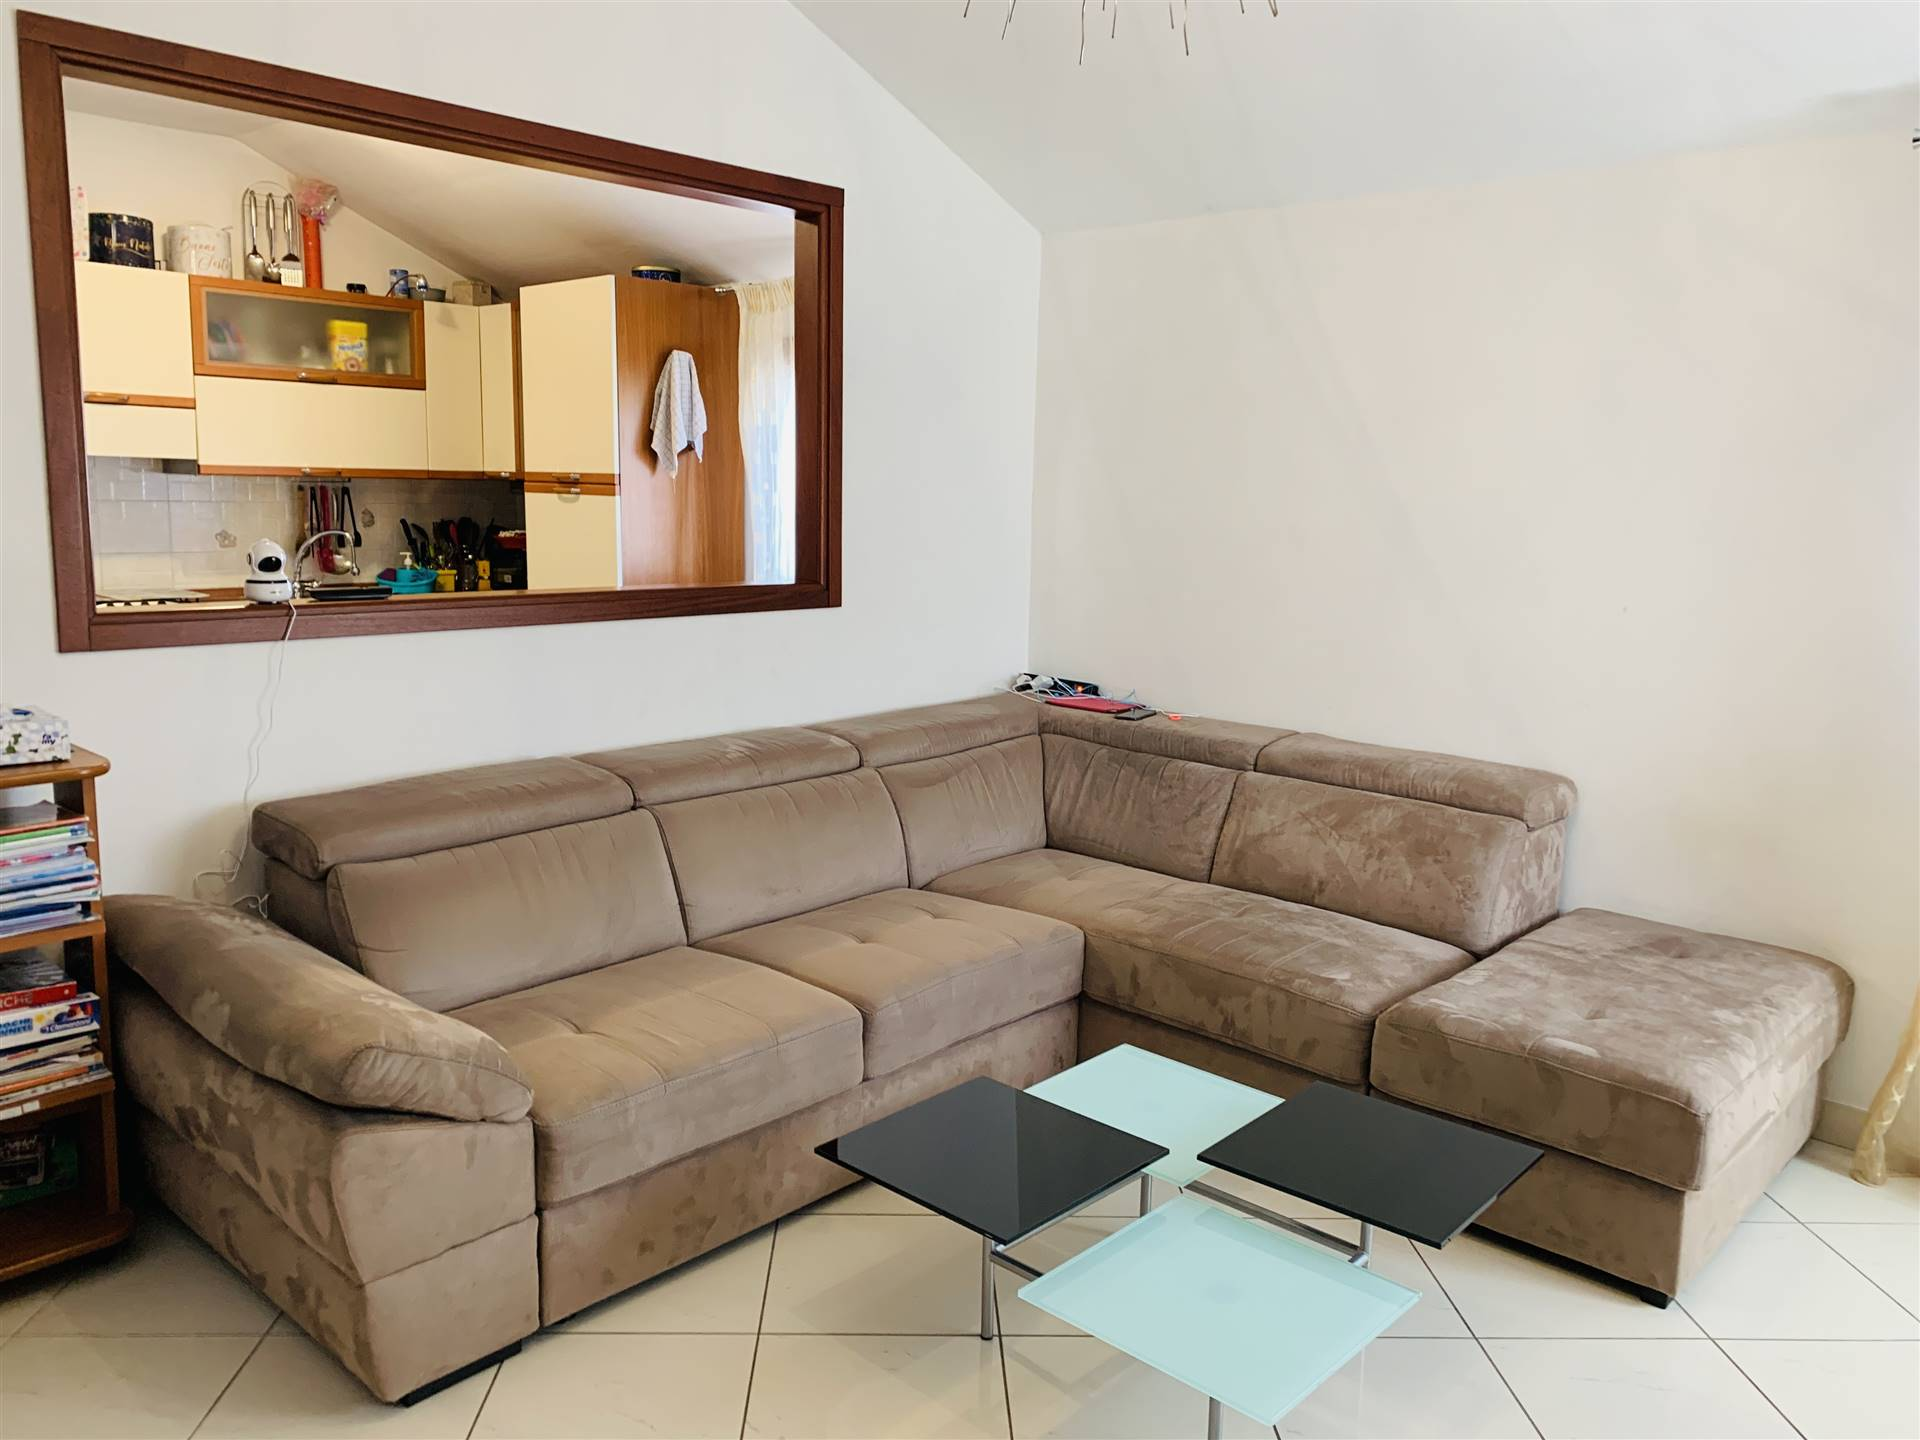 SOTTOMARINA, CHIOGGIA, Apartment for sale of 55 Sq. mt., Habitable, Heating Individual heating system, Energetic class: G, placed at 3° on 3,